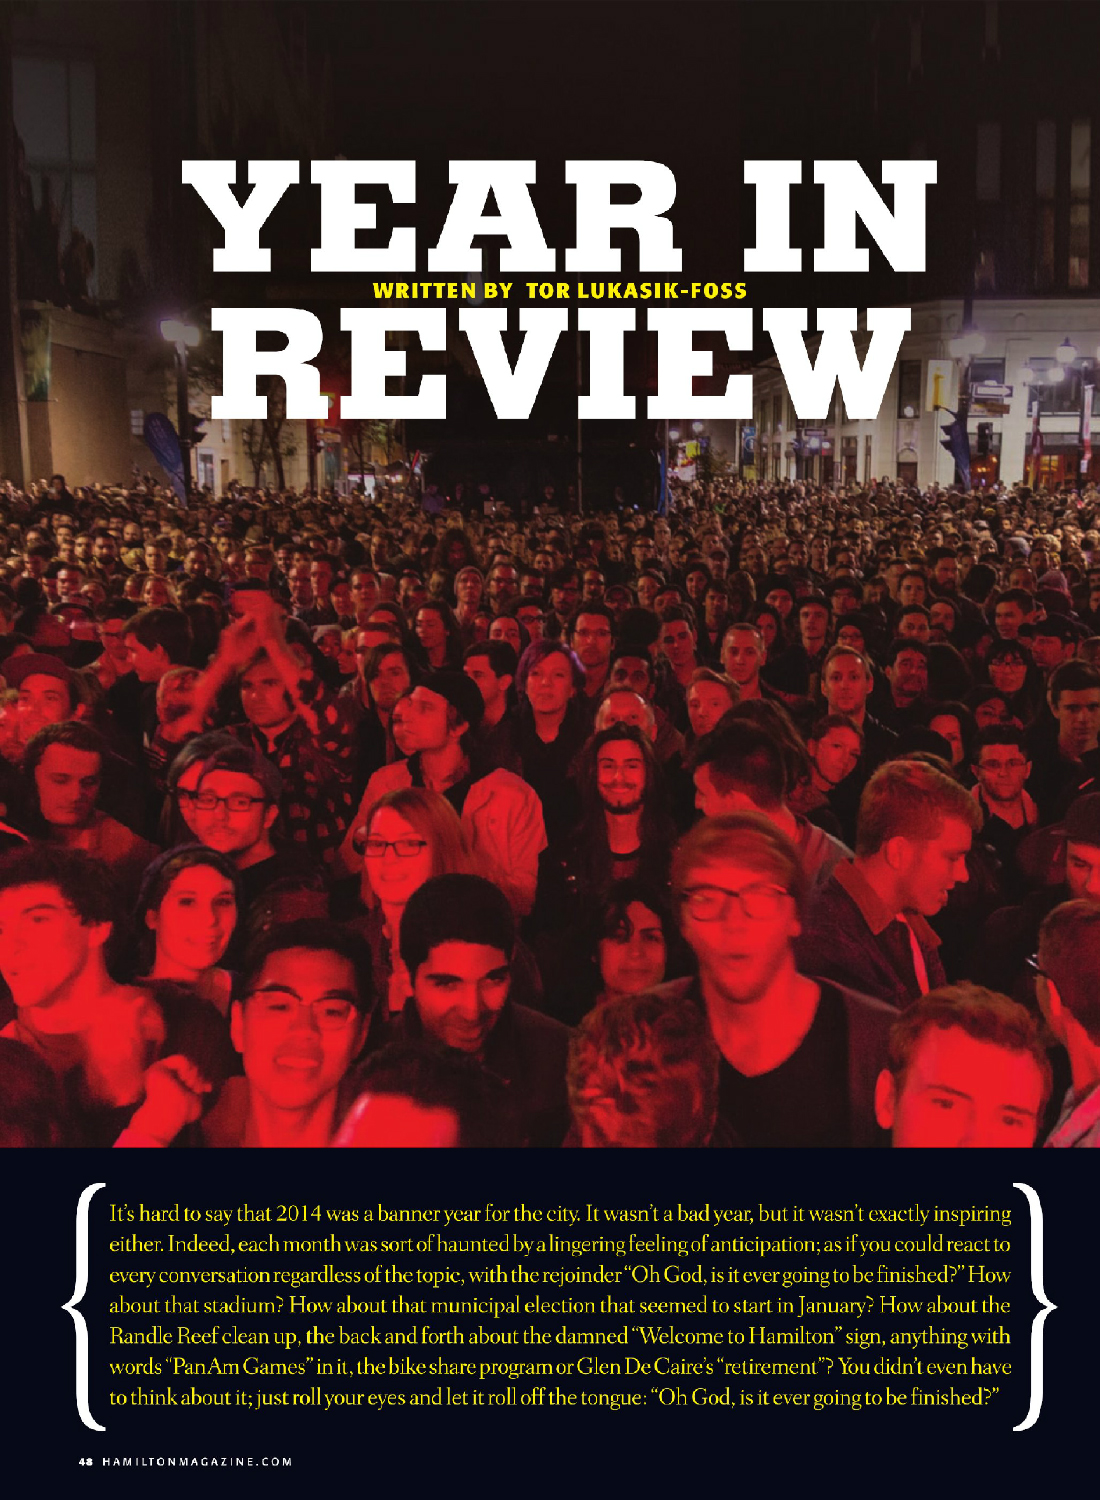 editorial-crowd-Supercrawl-year-review-annual-Hamilton-Magazine-holiday-issue-2014-photo-by-Kevin-Patrick-Robbins.jpg